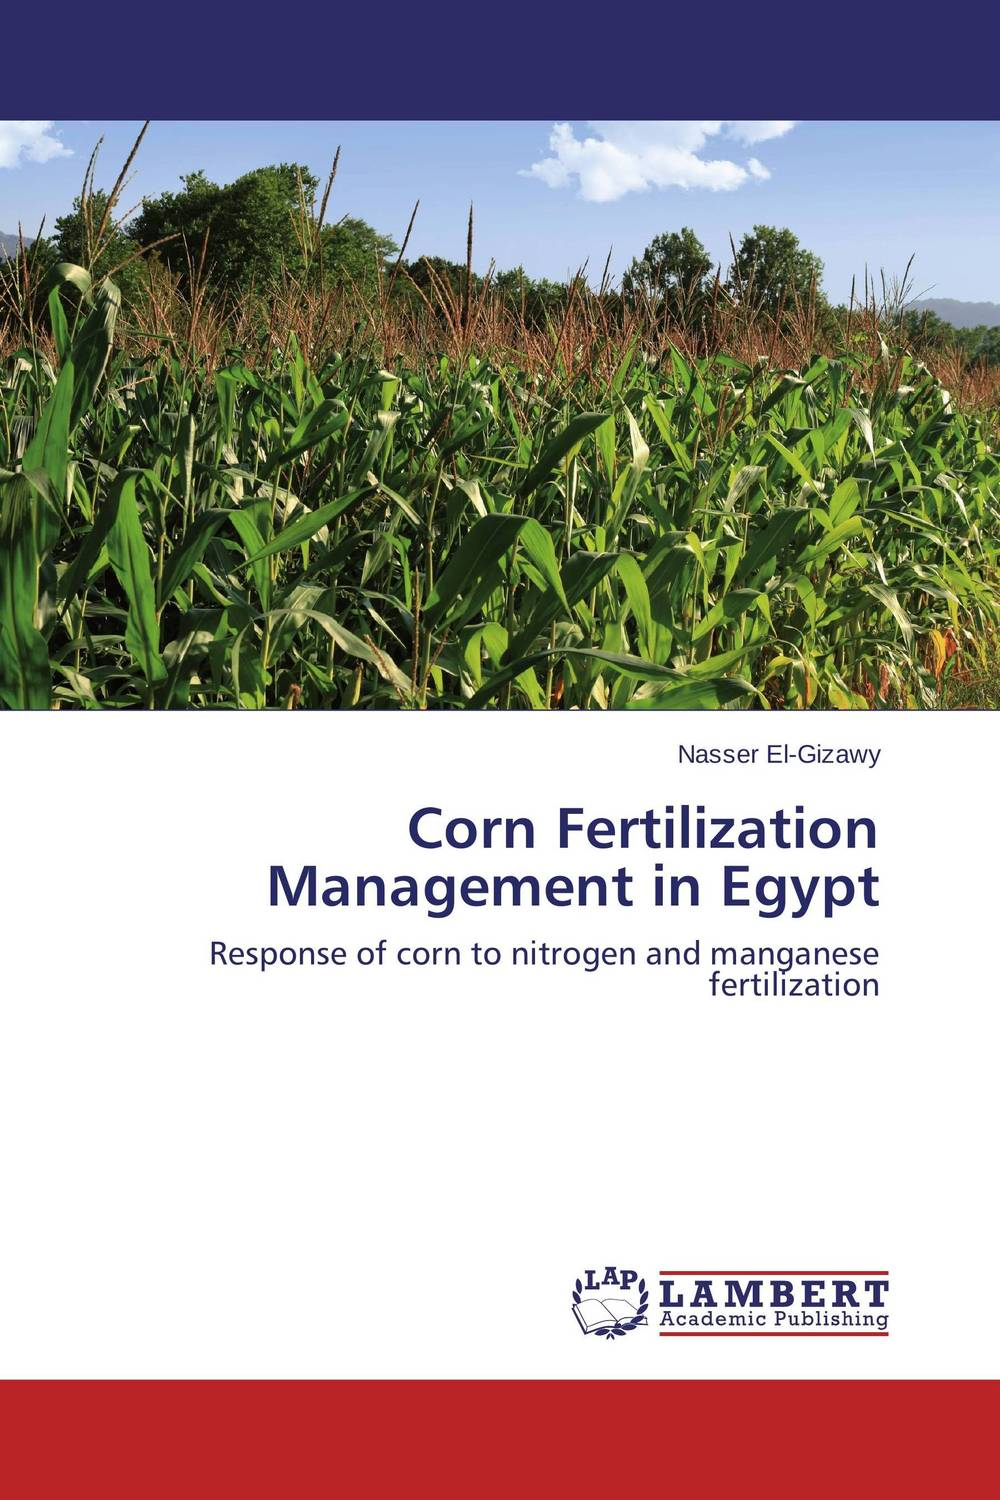 Corn Fertilization Management in Egypt cleto namoobe and rajender kumar nanwal growth yield and quality of sorghum as influenced by nitrogen levels